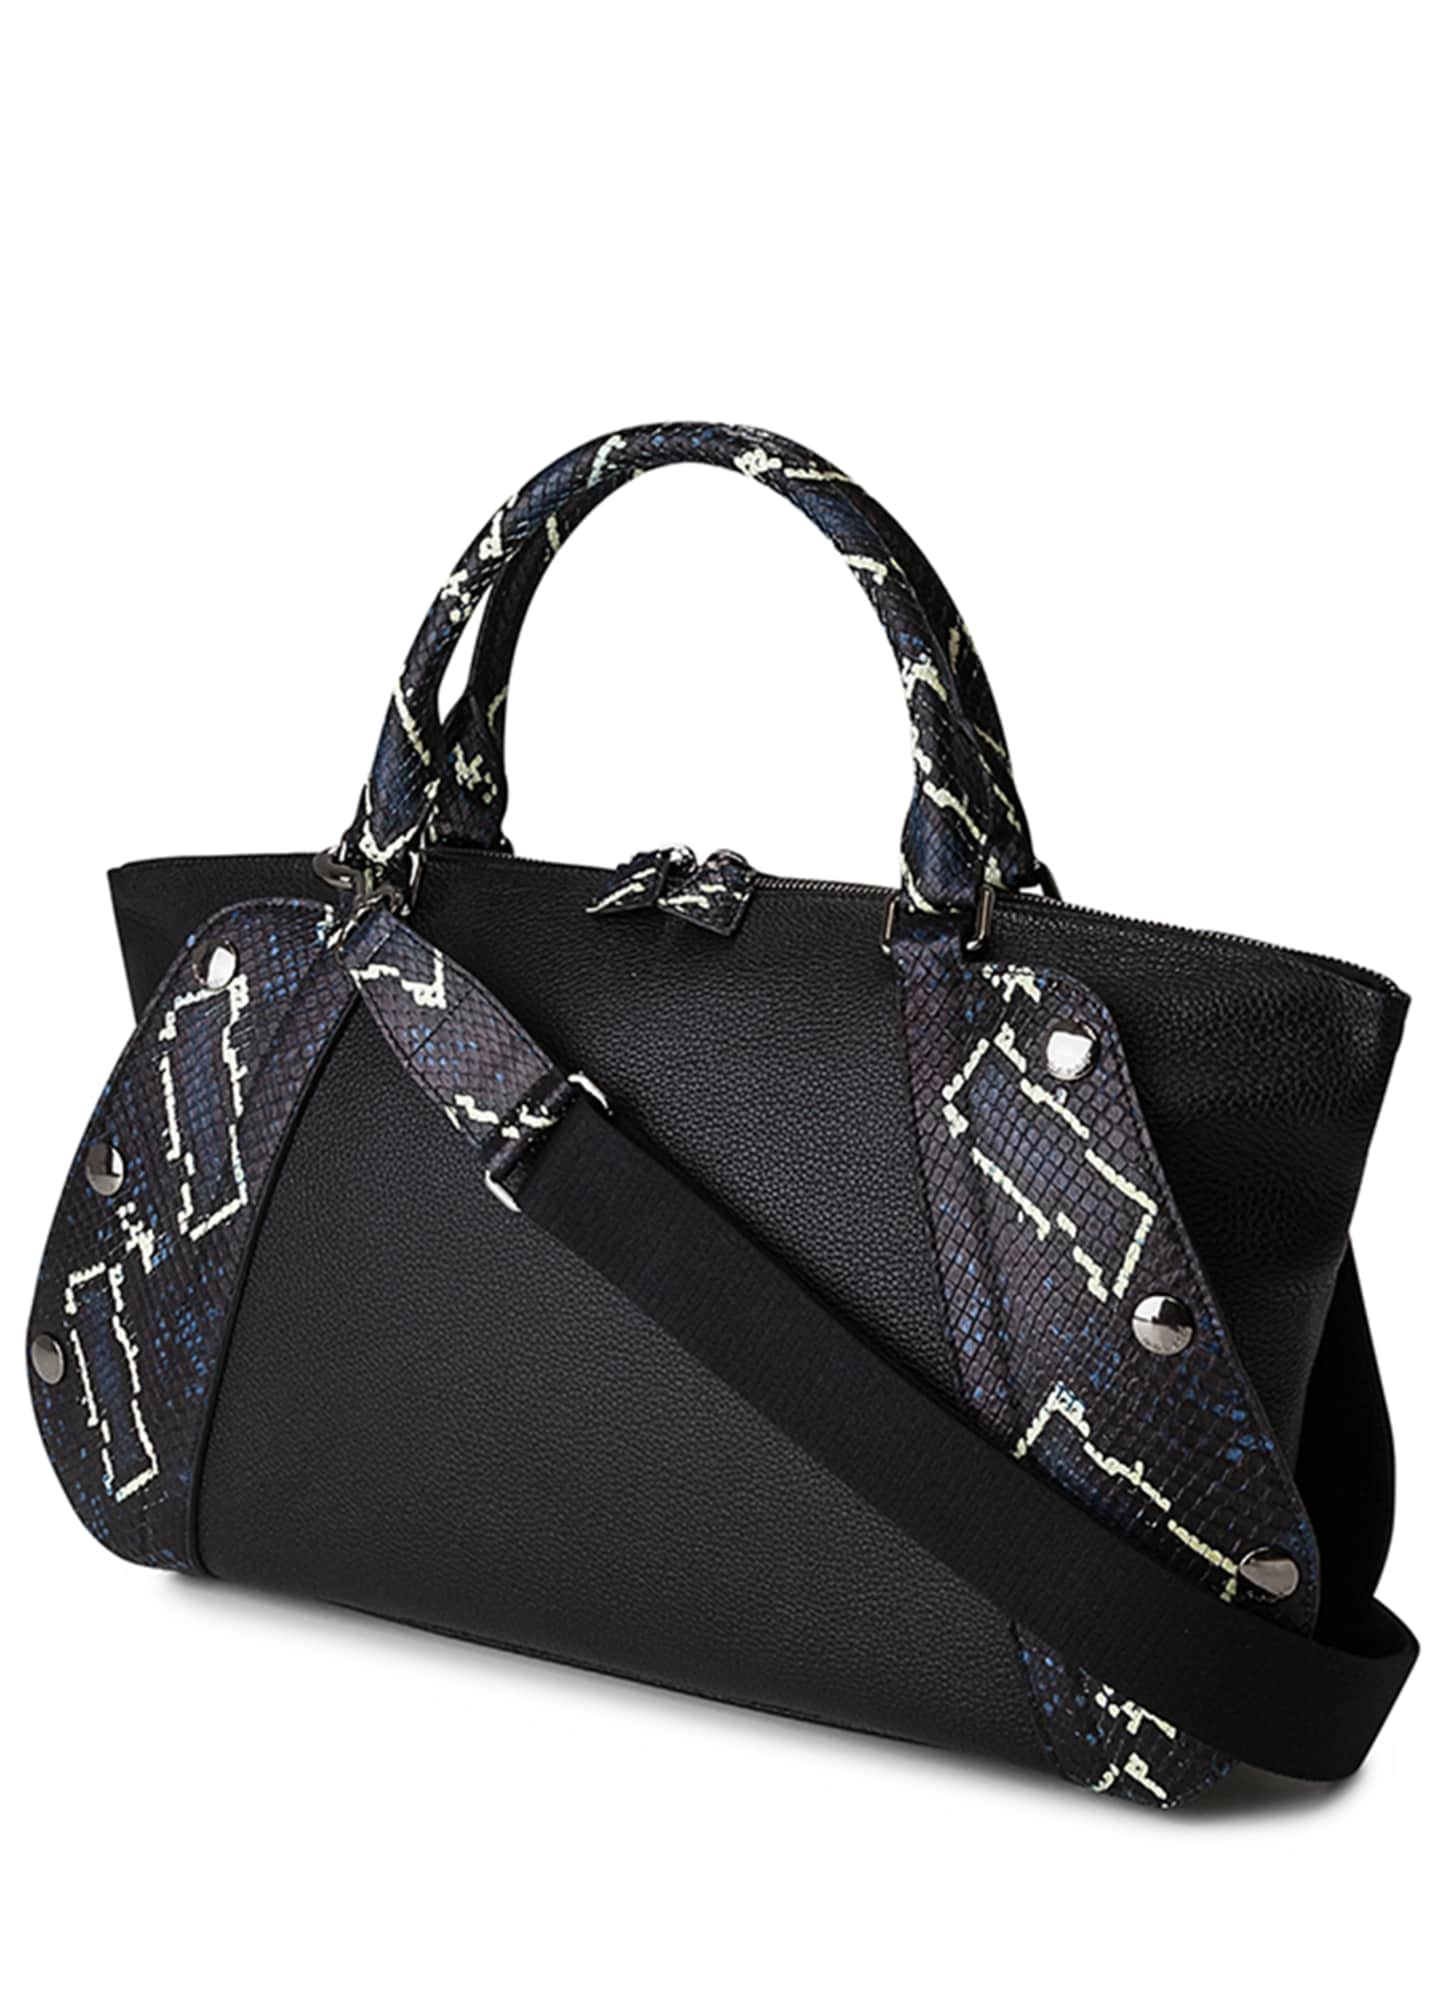 Image 4 of 4: Aimee Small Convertible Leather/Python Satchel Bag